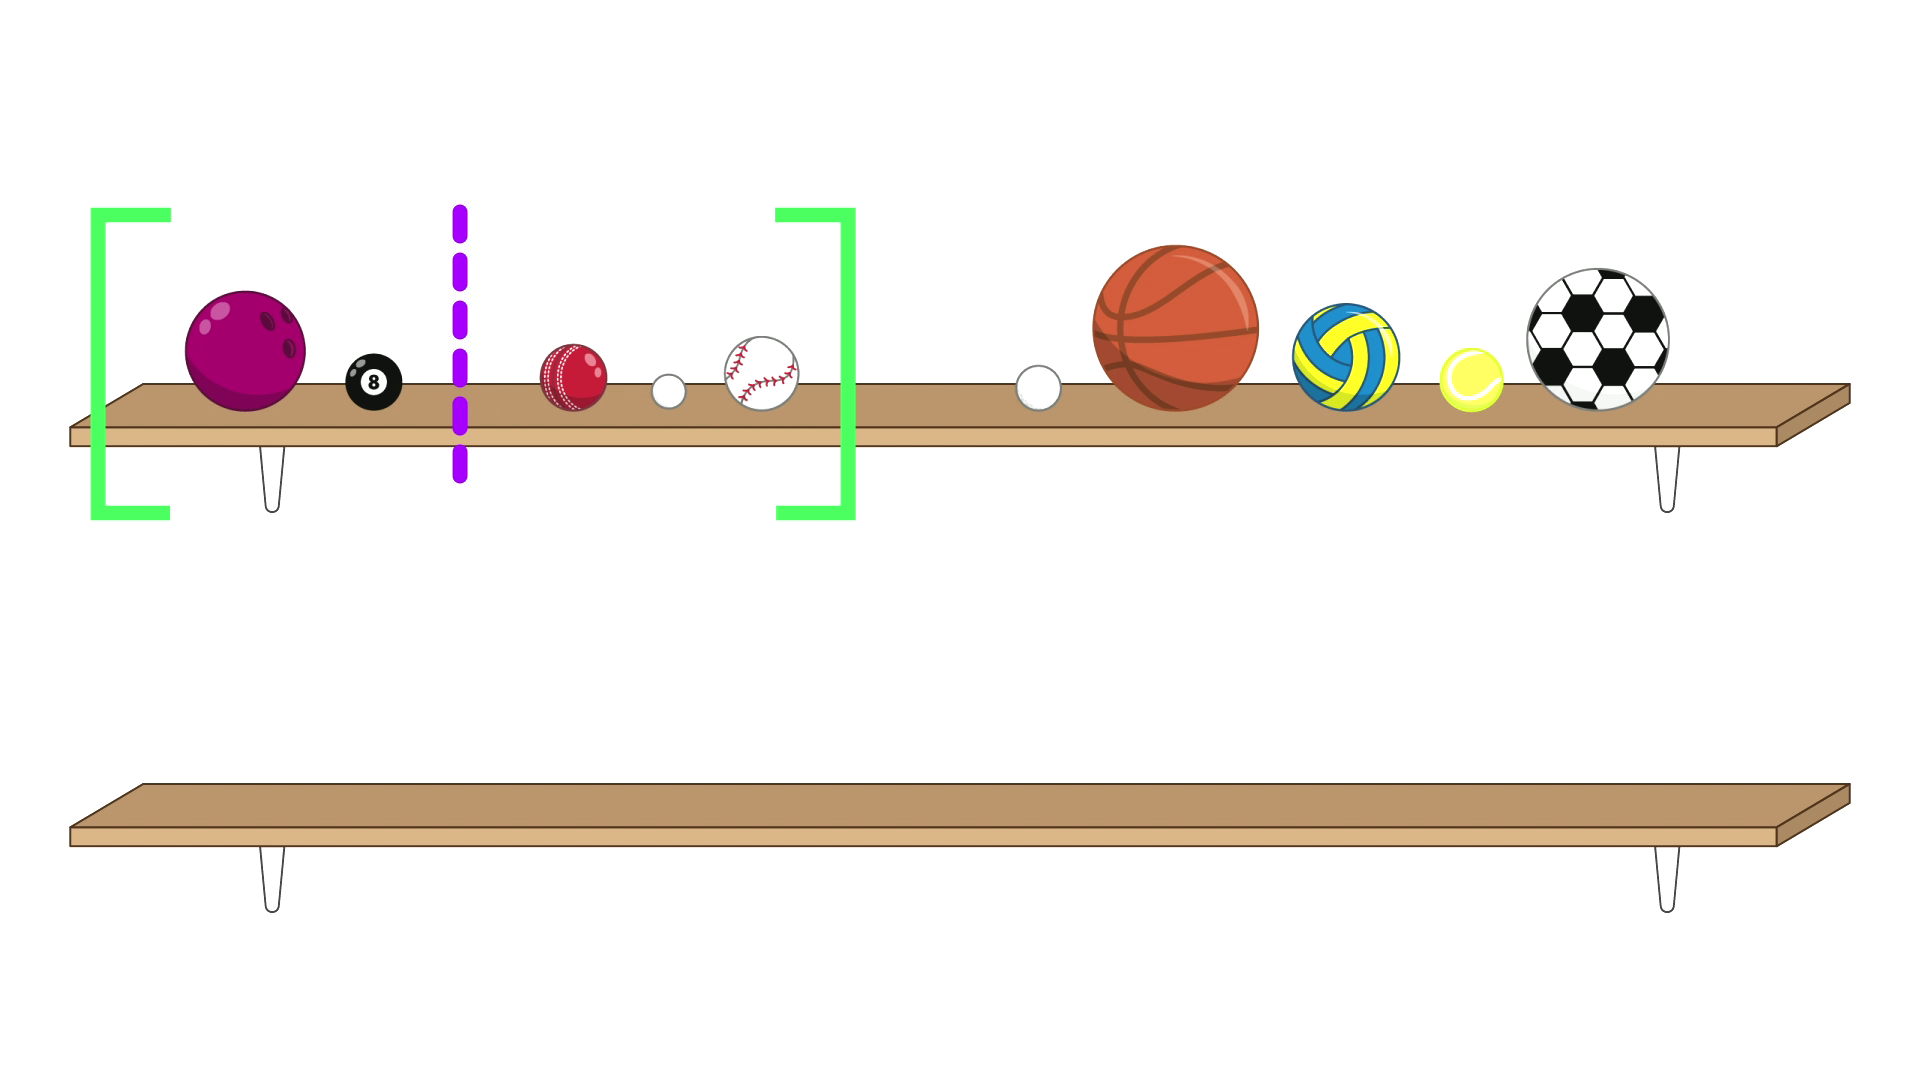 The same 10 balls on the shelf. The five balls on the left (bowling ball to baseball) are now contained within a pair of green square brackets. A purple dashed line splits this group of five into a group of two (bowling ball and pool ball) and a group of three (cricket ball, ping pong ball, baseball. There is an empty shelf below.